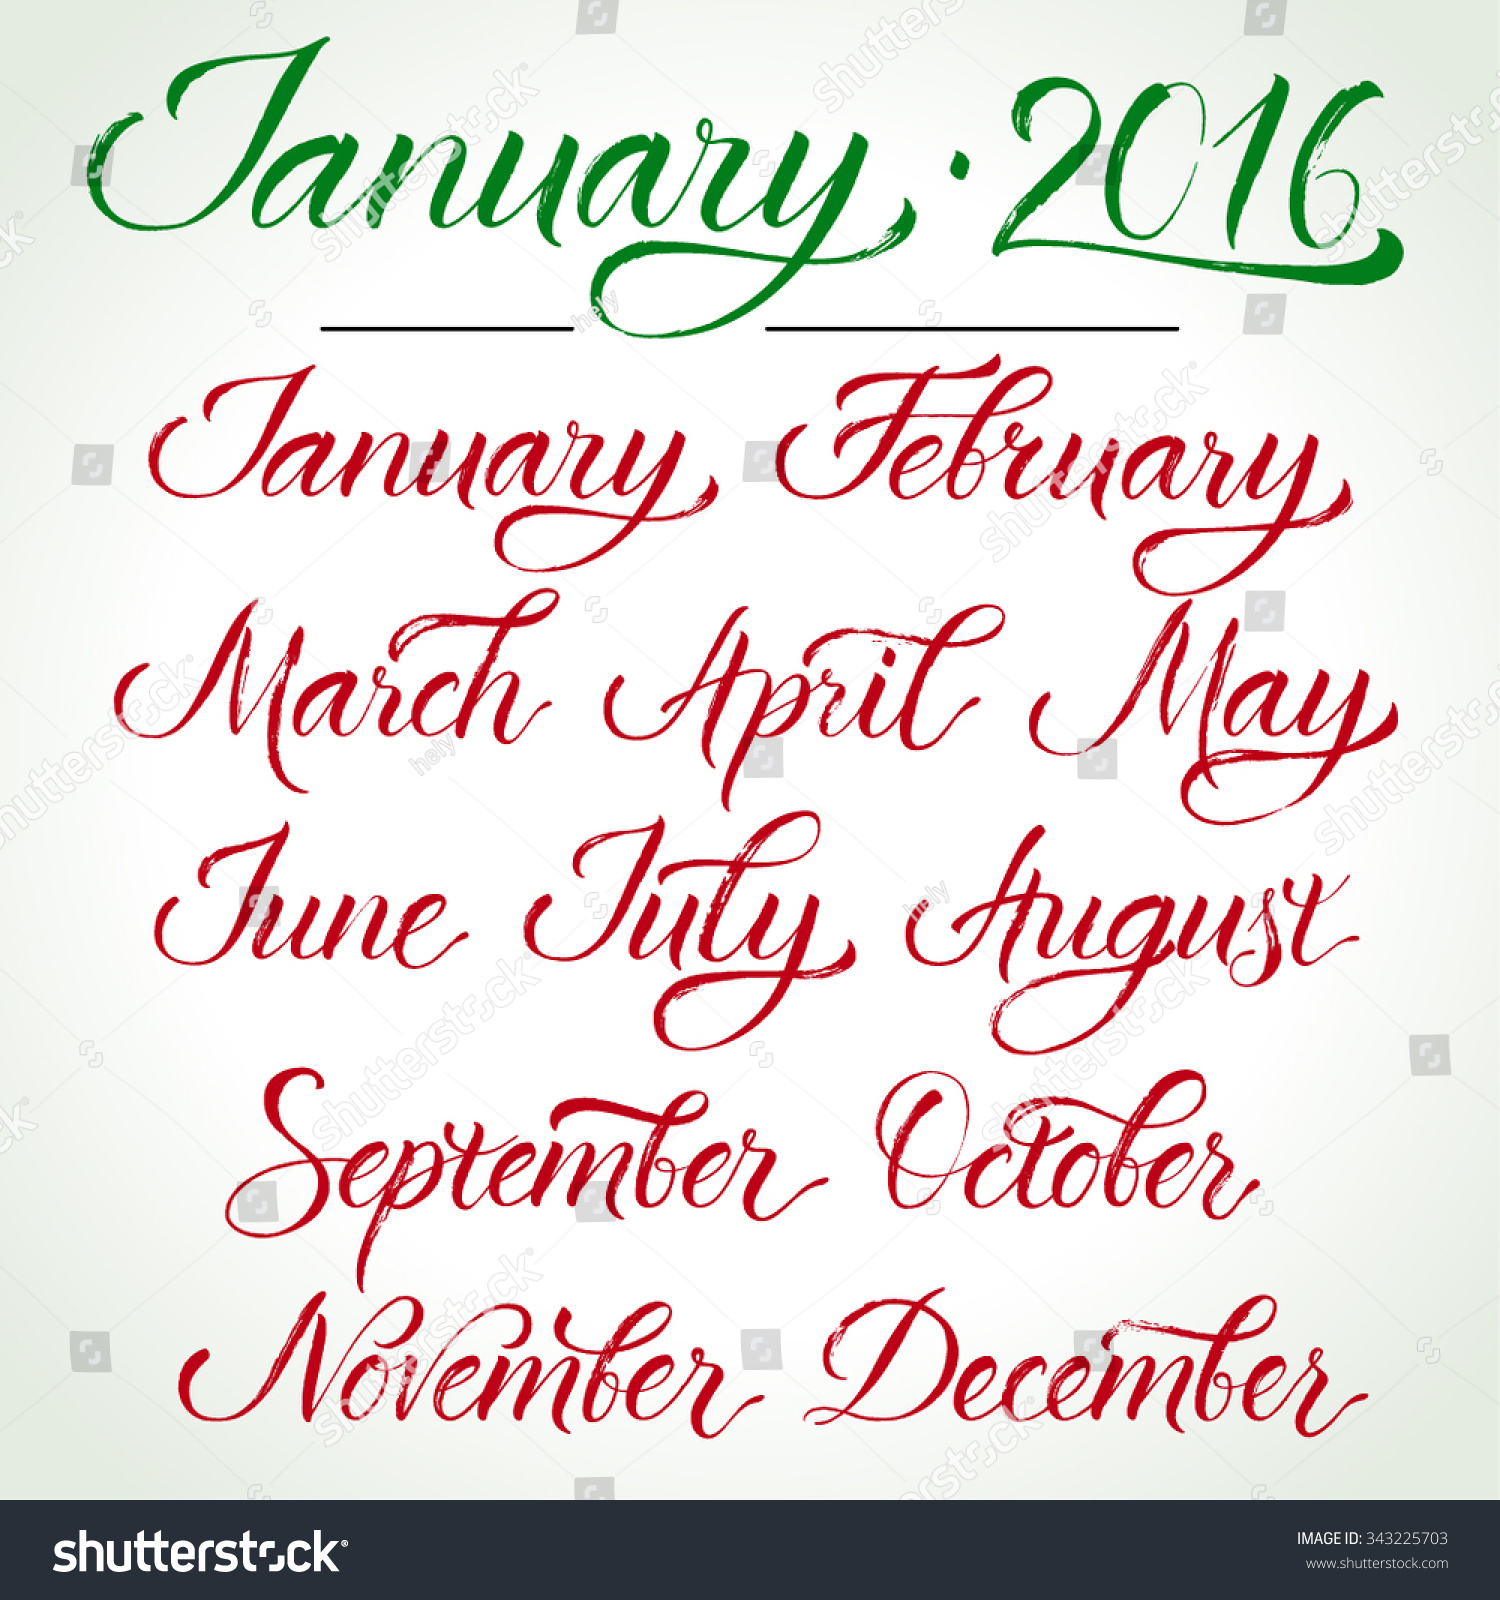 Twelve Months Hand Written Calligraphy Template For Calendar Brush Painted Letters Vector